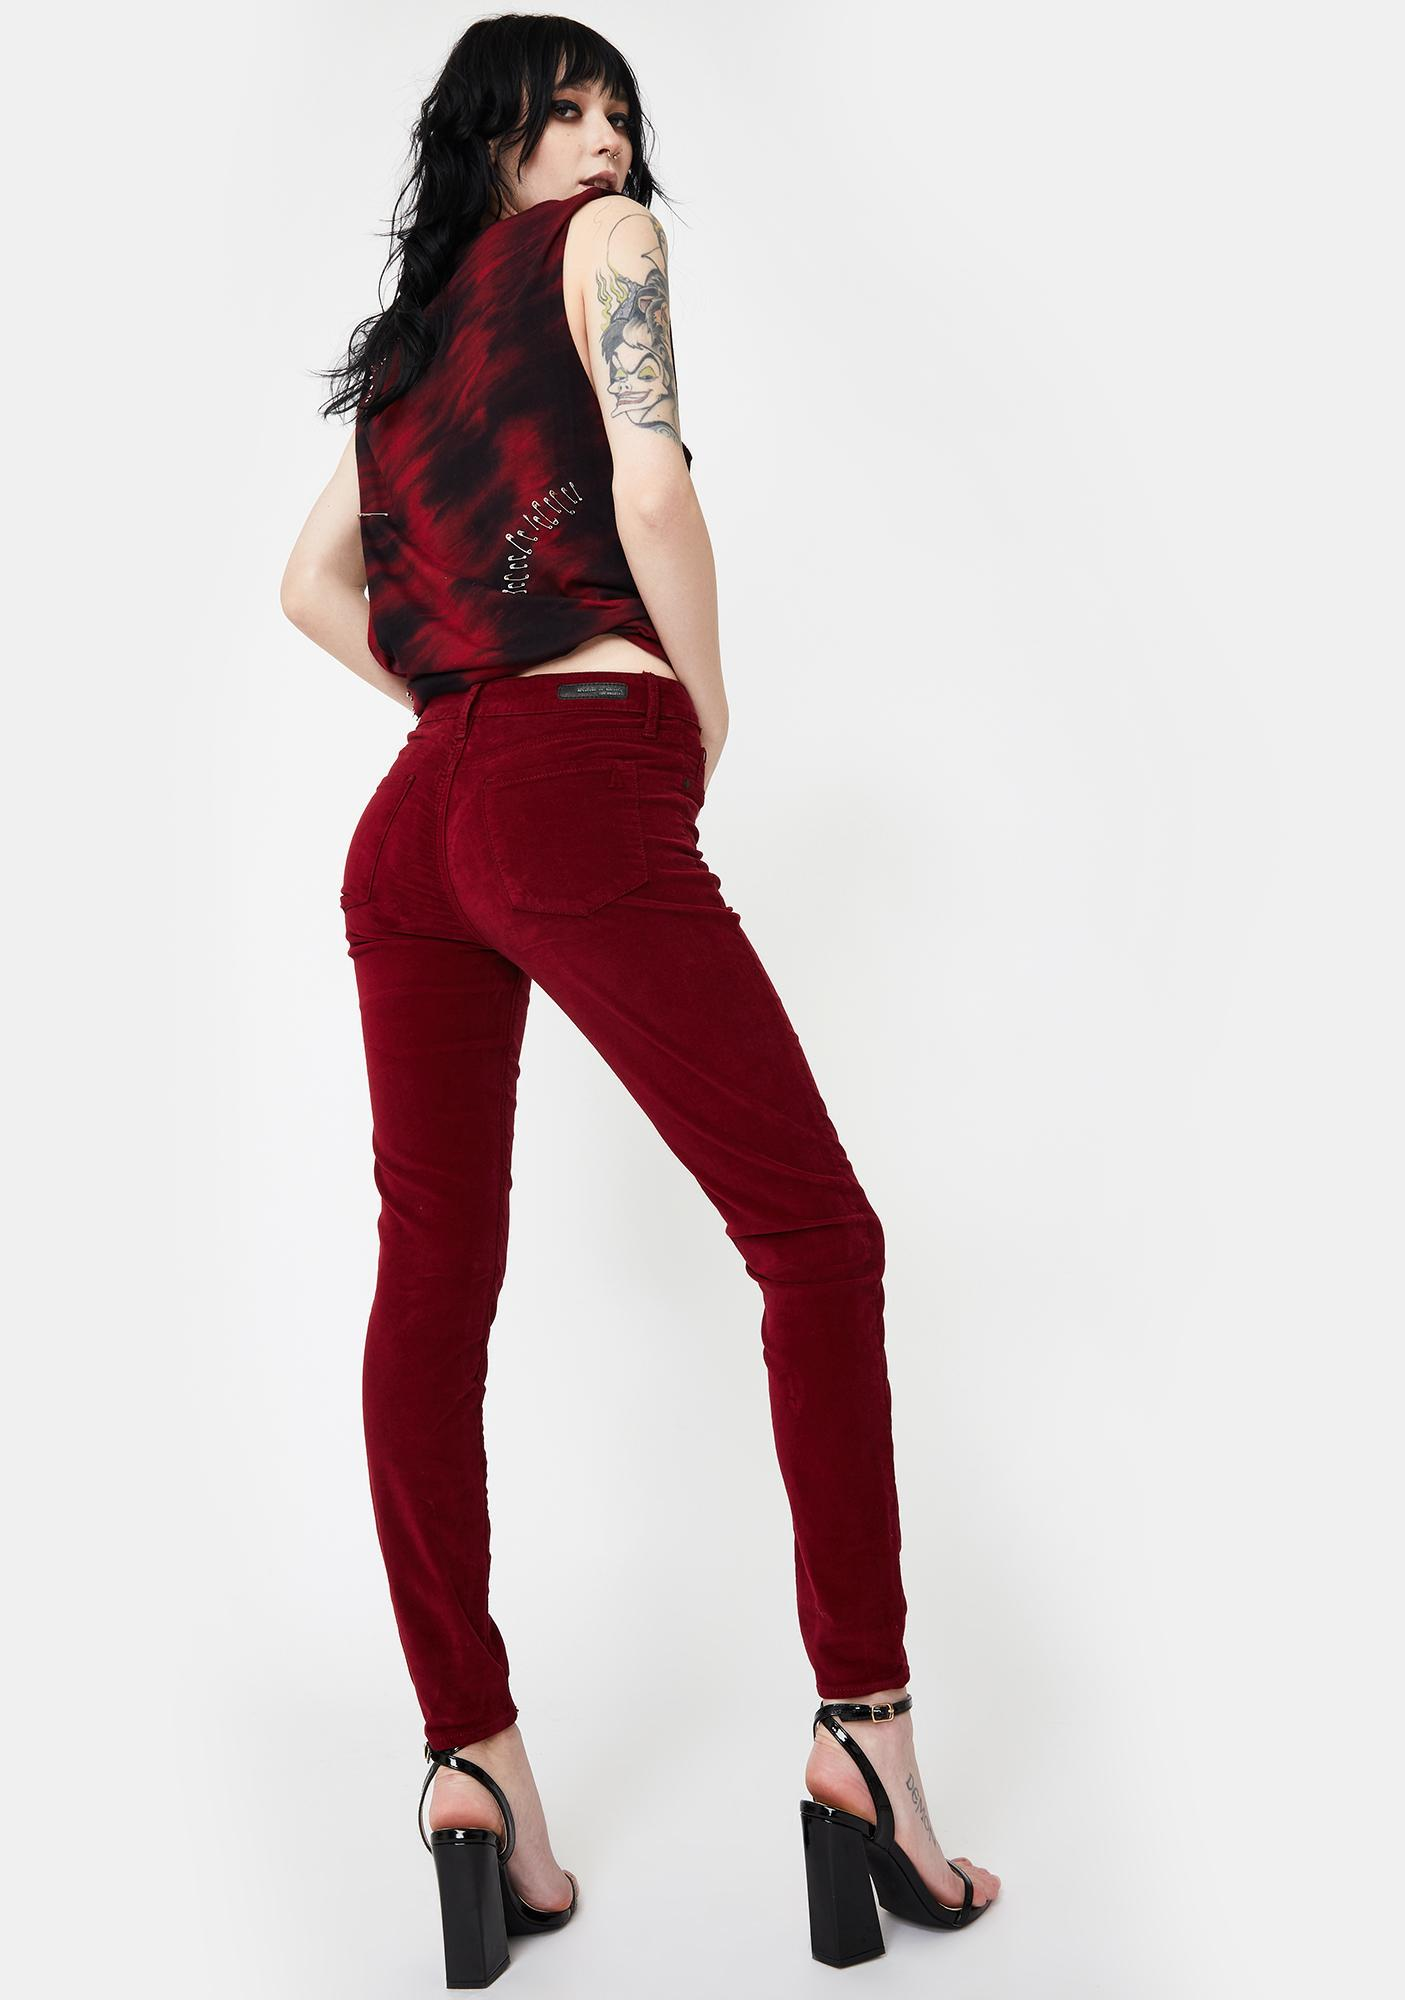 Articles of Society Perren Hilary High Rise Pants